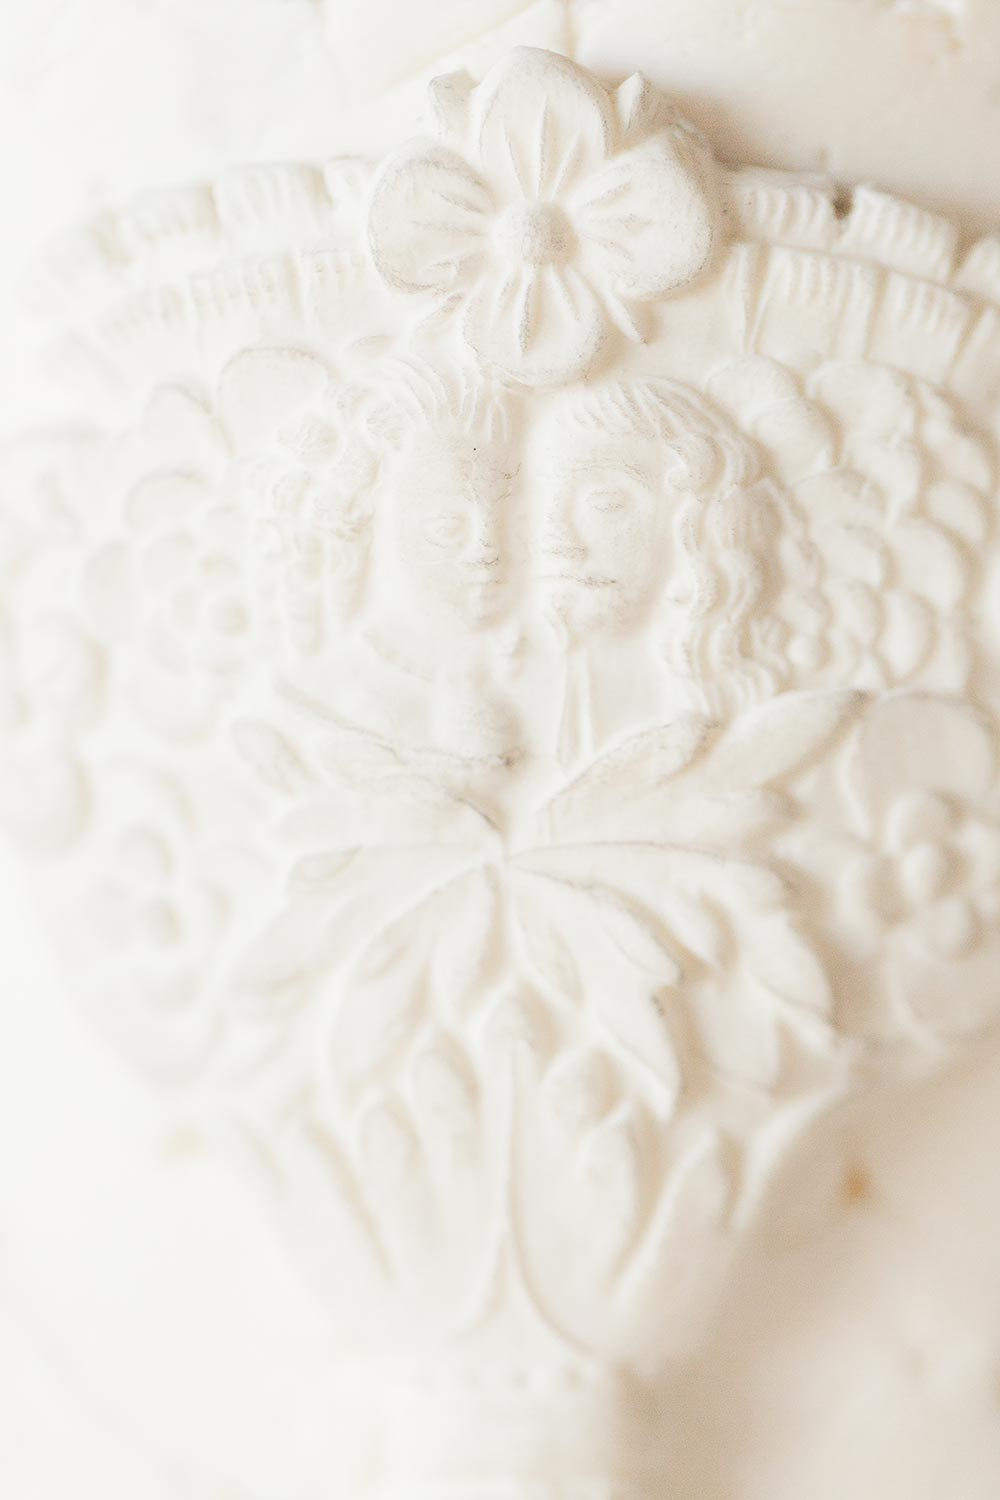 intricate wedding cake detailing with stone texture